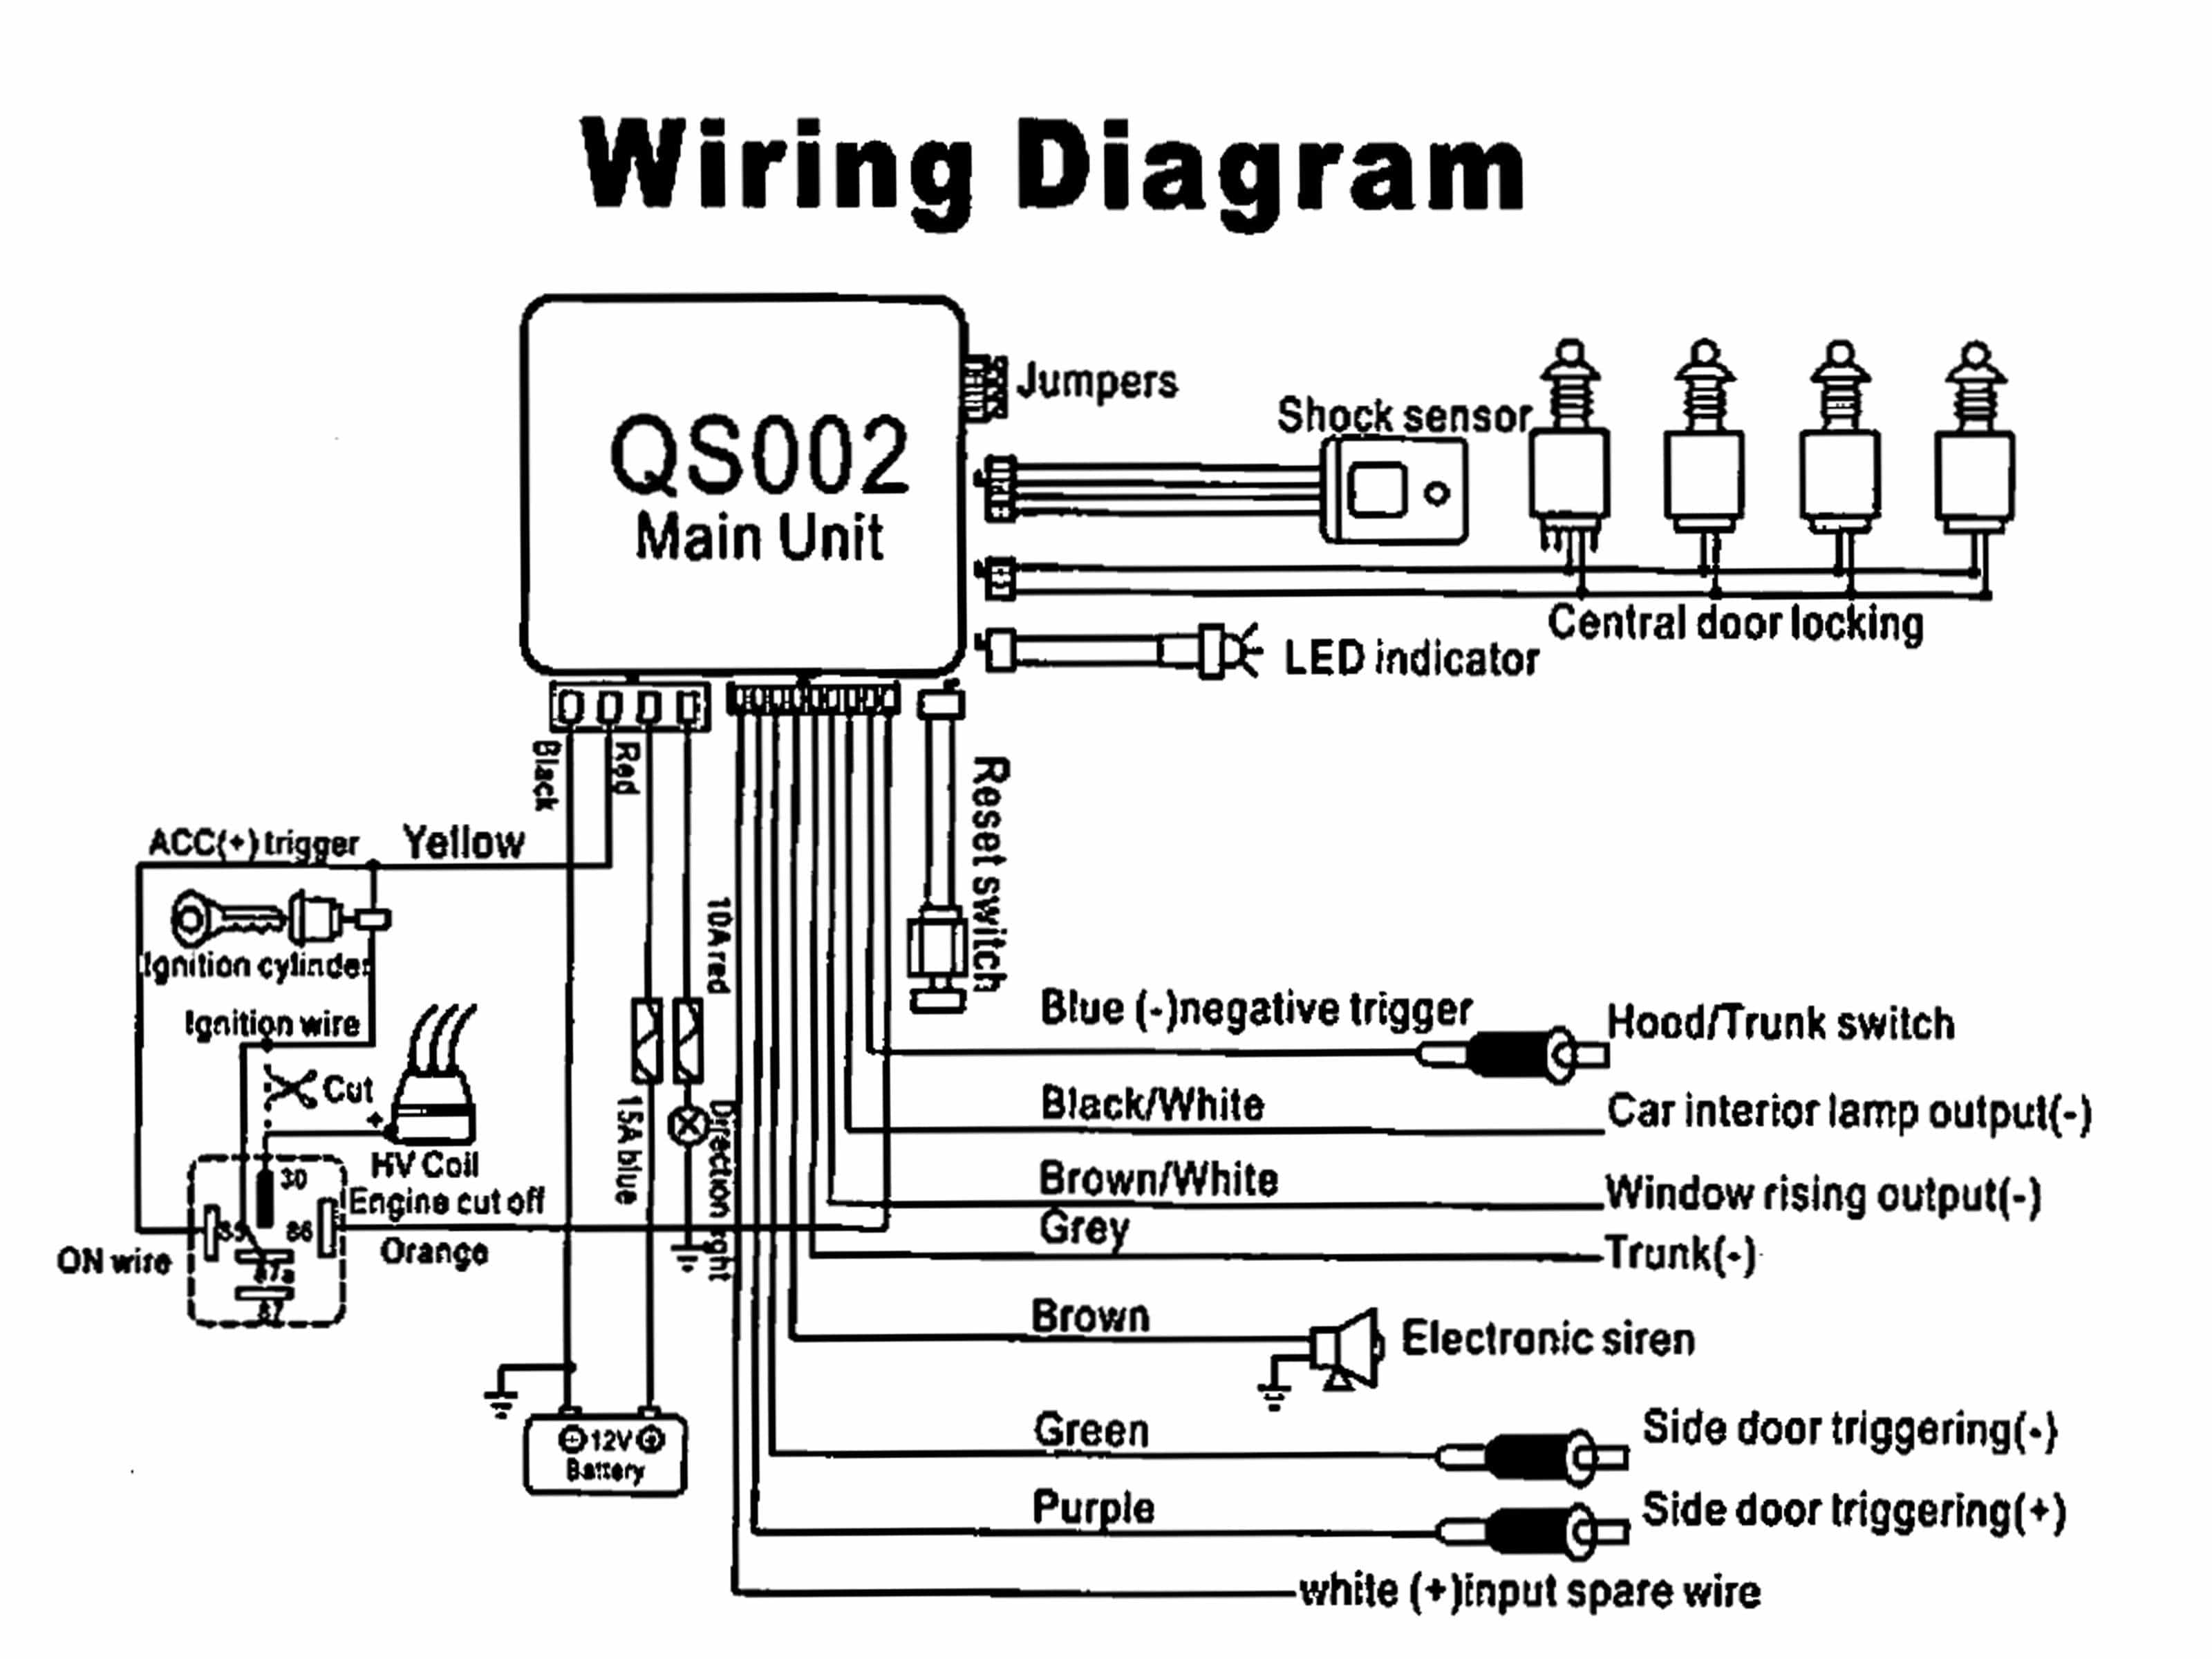 AlarmInstructions_7a98a2bc d189 4c5b 99b3 c774abdbef28 clarion cmd5 wiring diagram wiring diagram shrutiradio  at bakdesigns.co